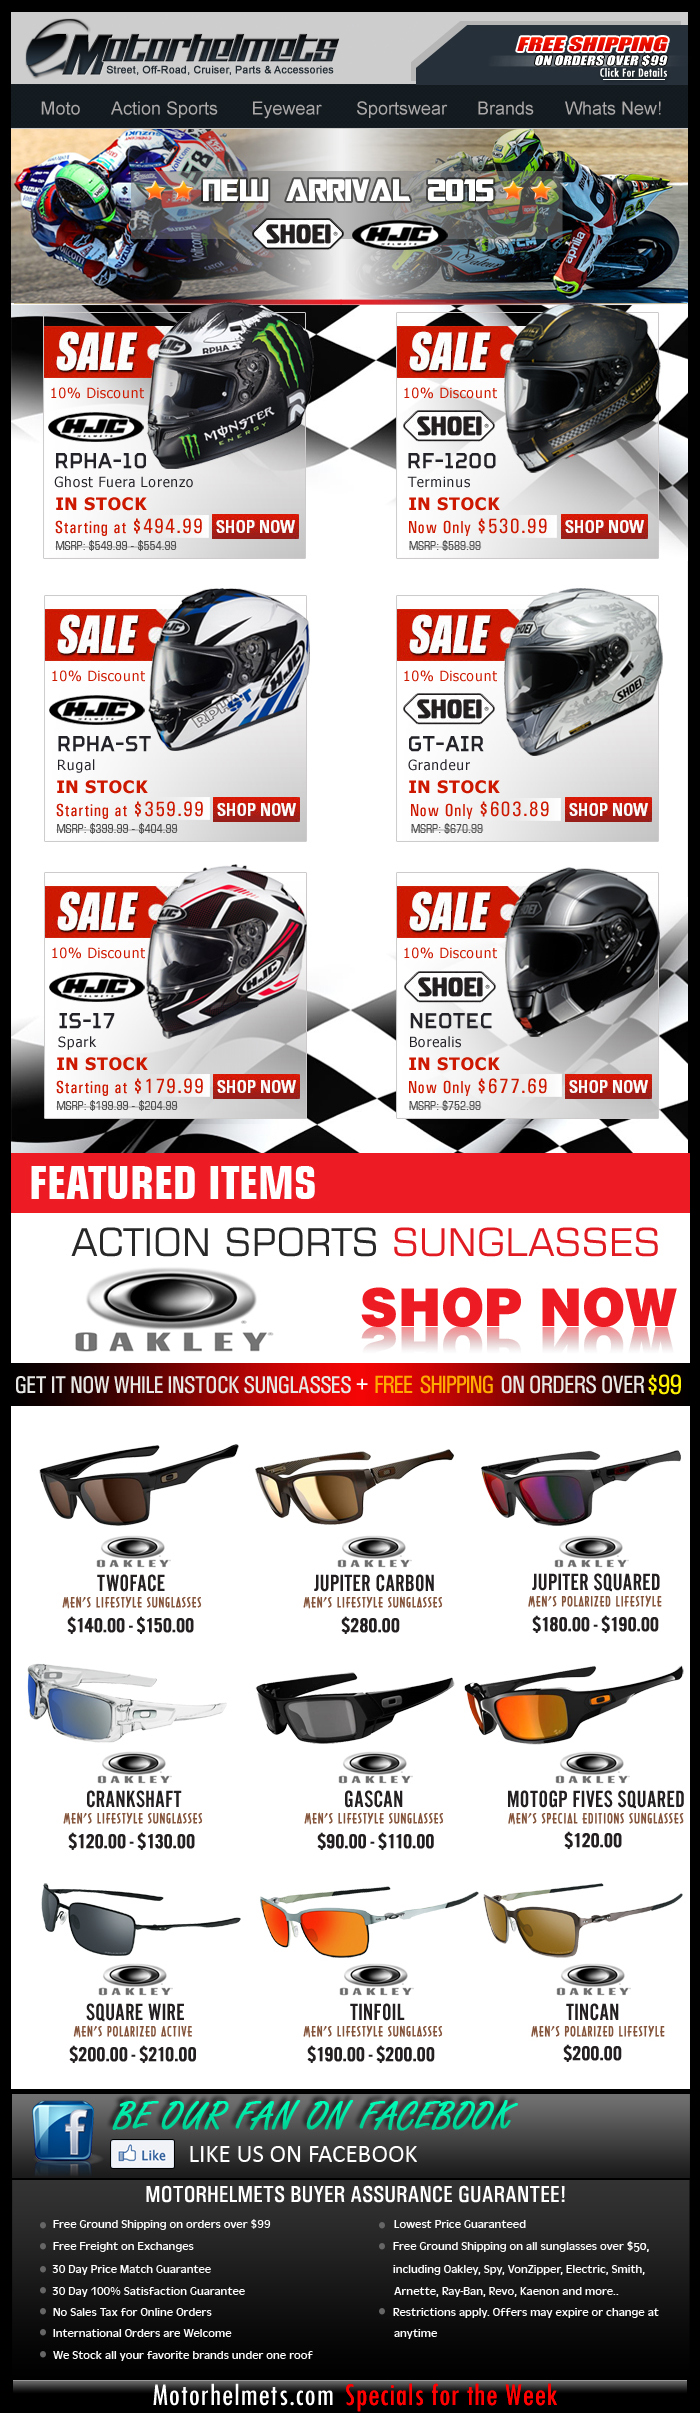 Just In...SHOEI and HJC 2015 Helmets at 10% off!